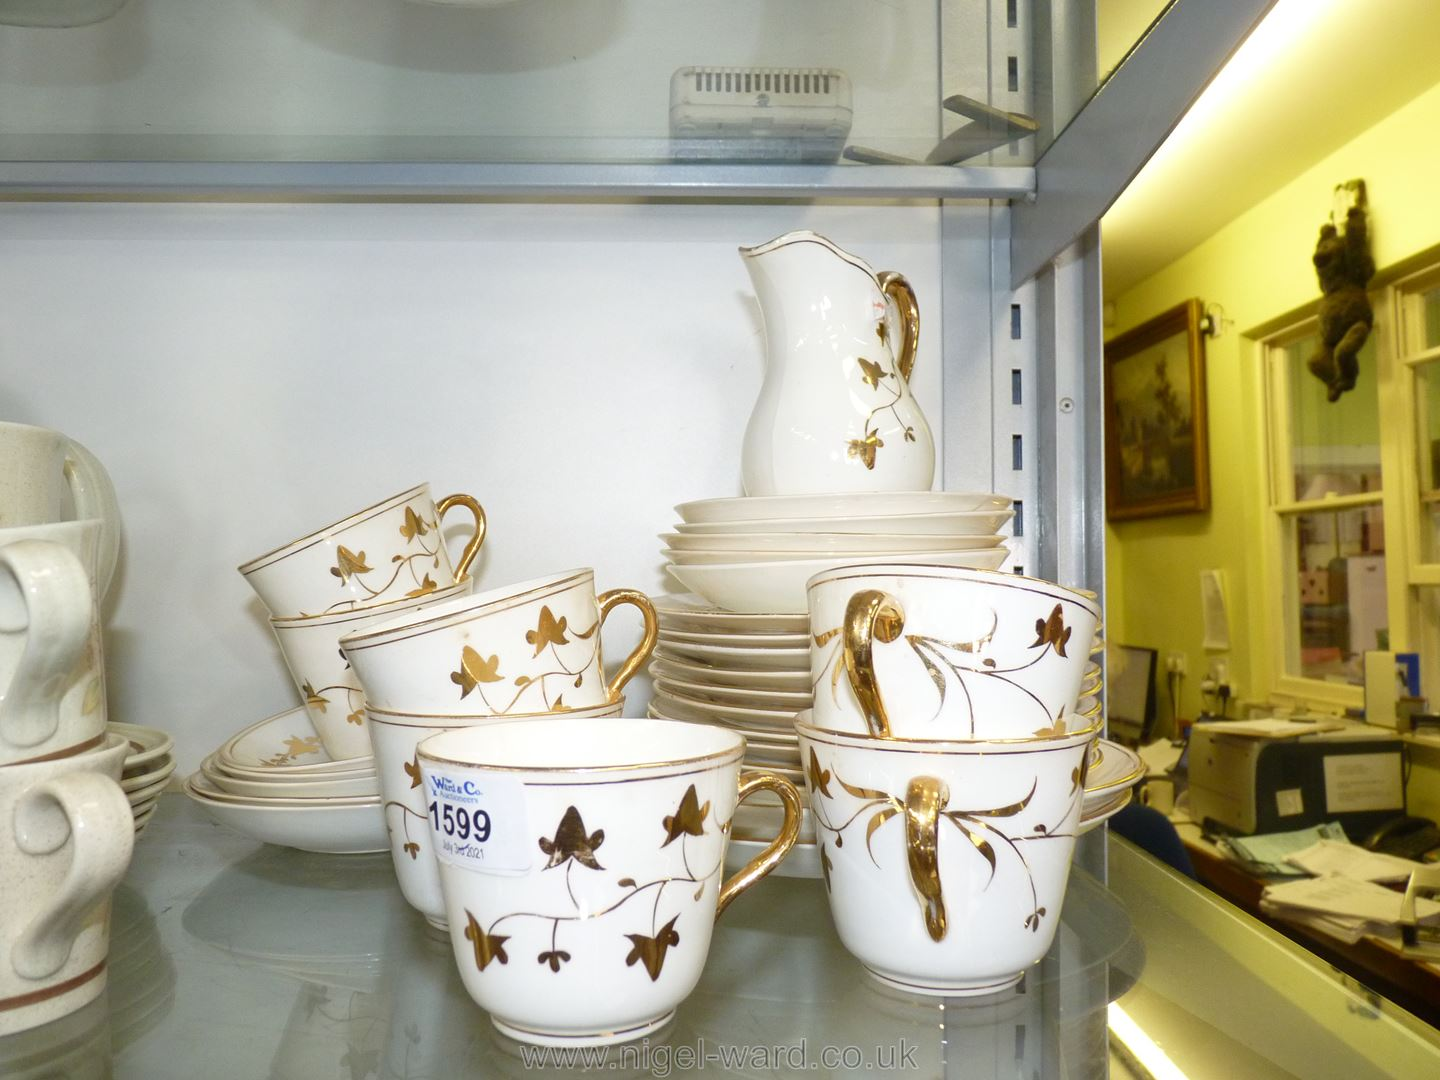 A part Teaset in white and gilt ivy leaf pattern